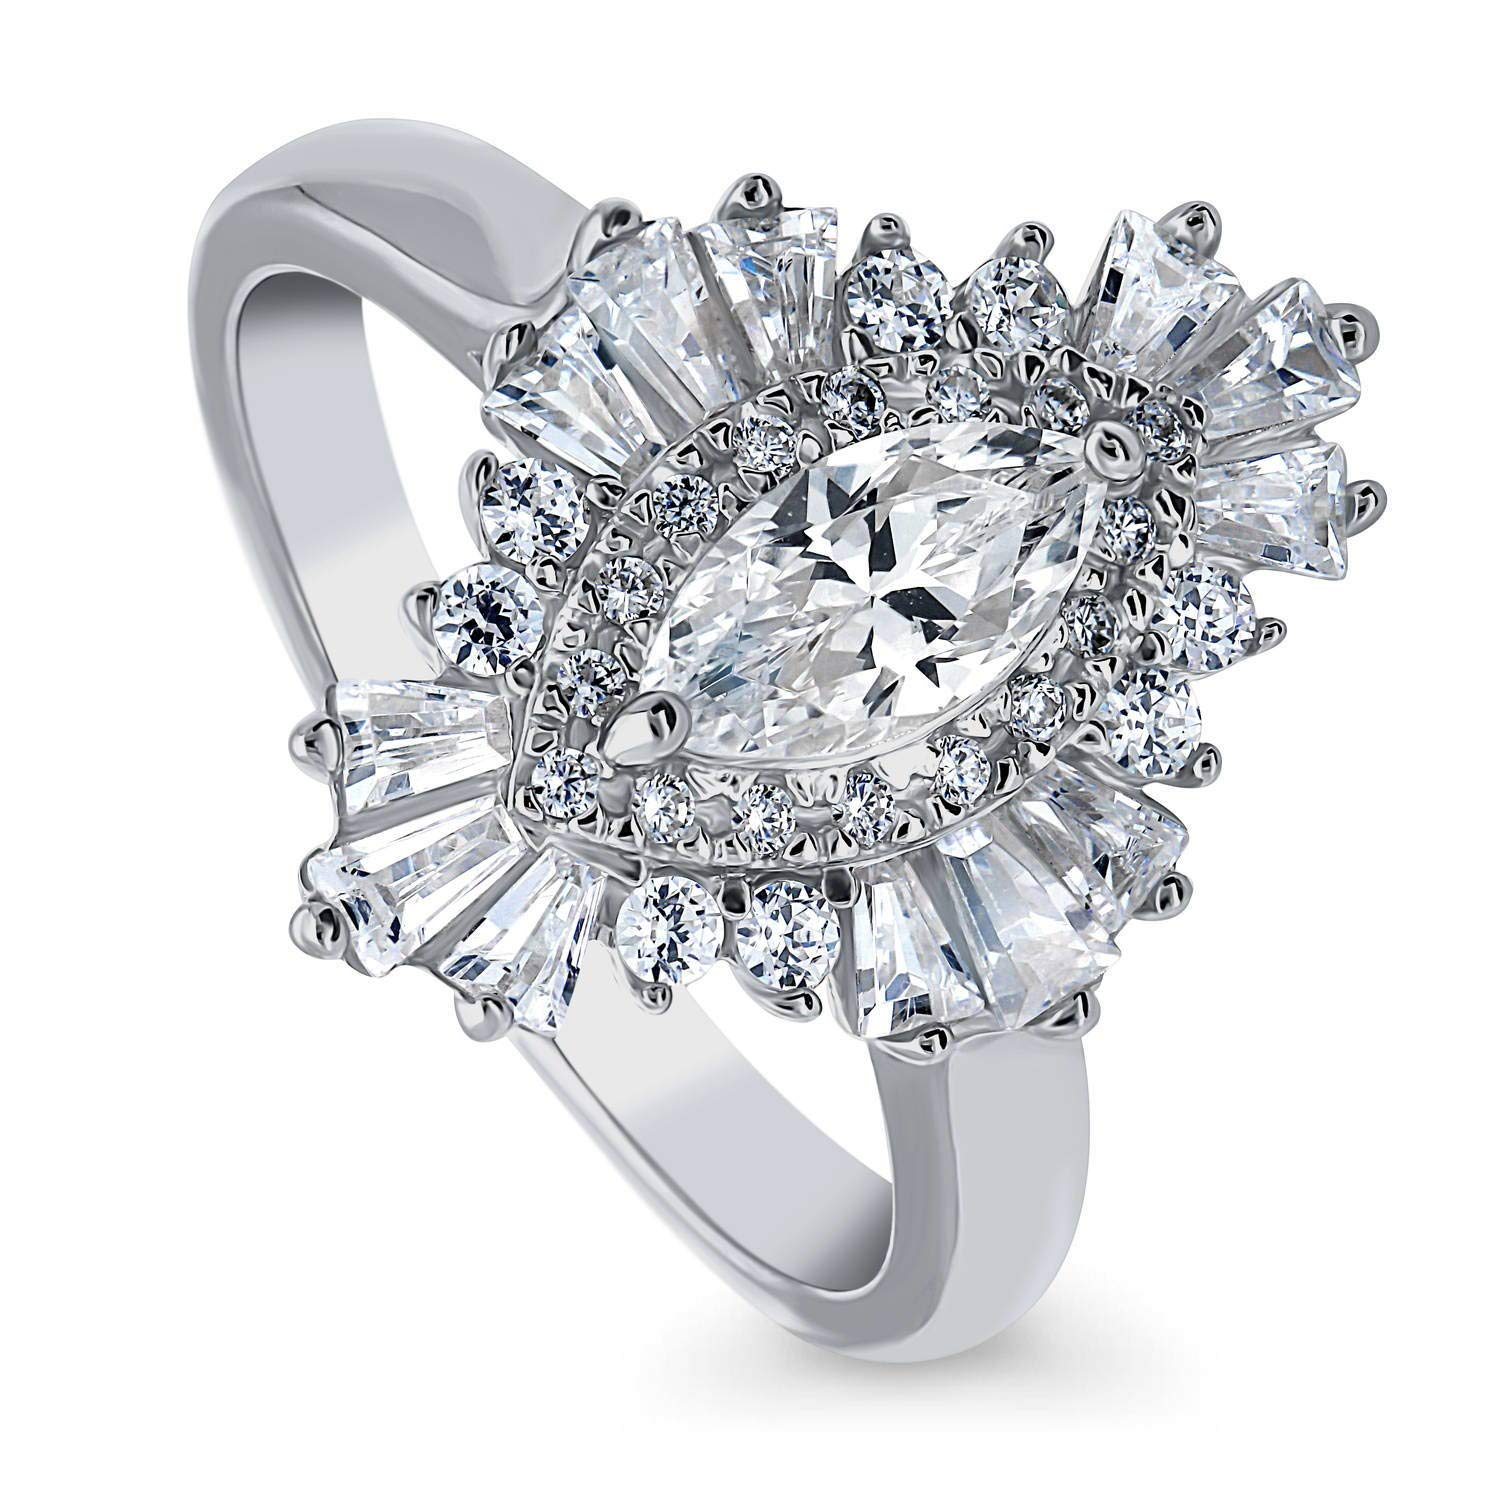 Designer Sterling Silver Plated Halo wedding Ring CZ Halo Bridal Rings Special Gift Round Cut CZ Engagement ring Round Cut Promise Cz Ring